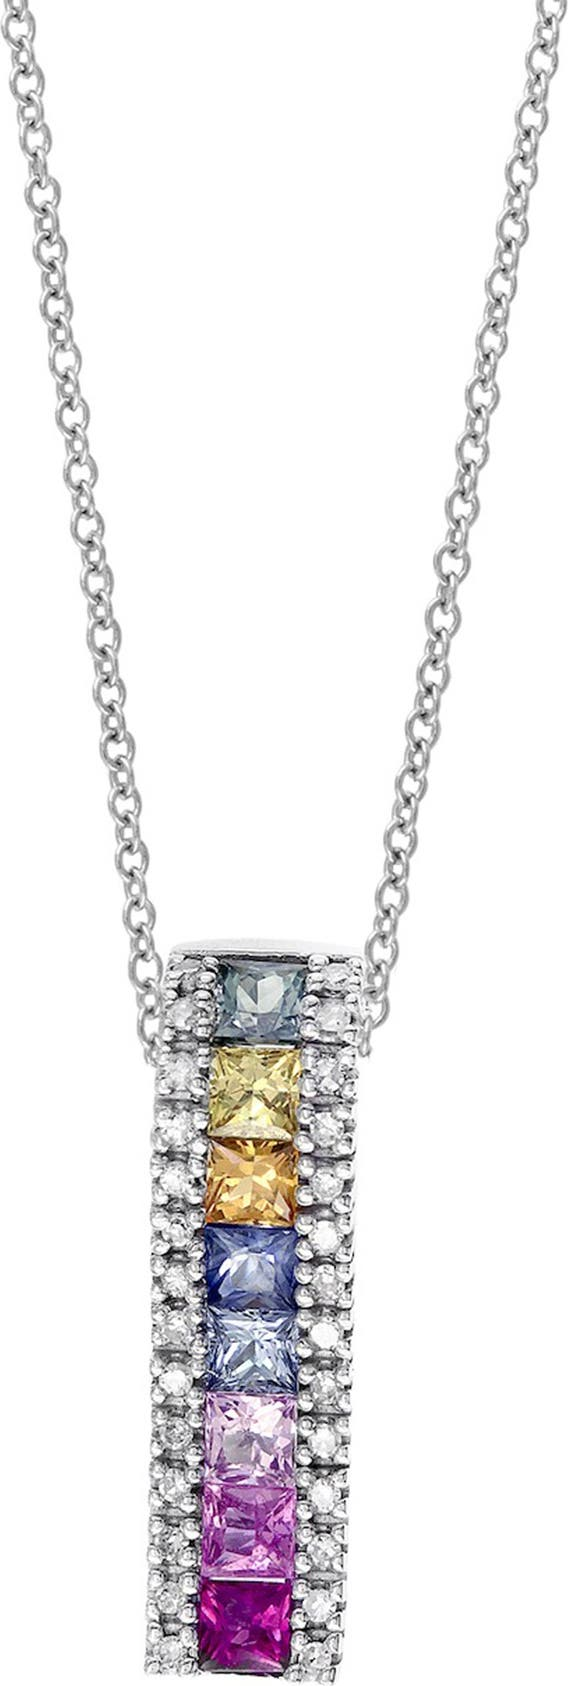 Details about  /14K White Gold 0.02 ct Diamond and Sapphire Pendant Necklace